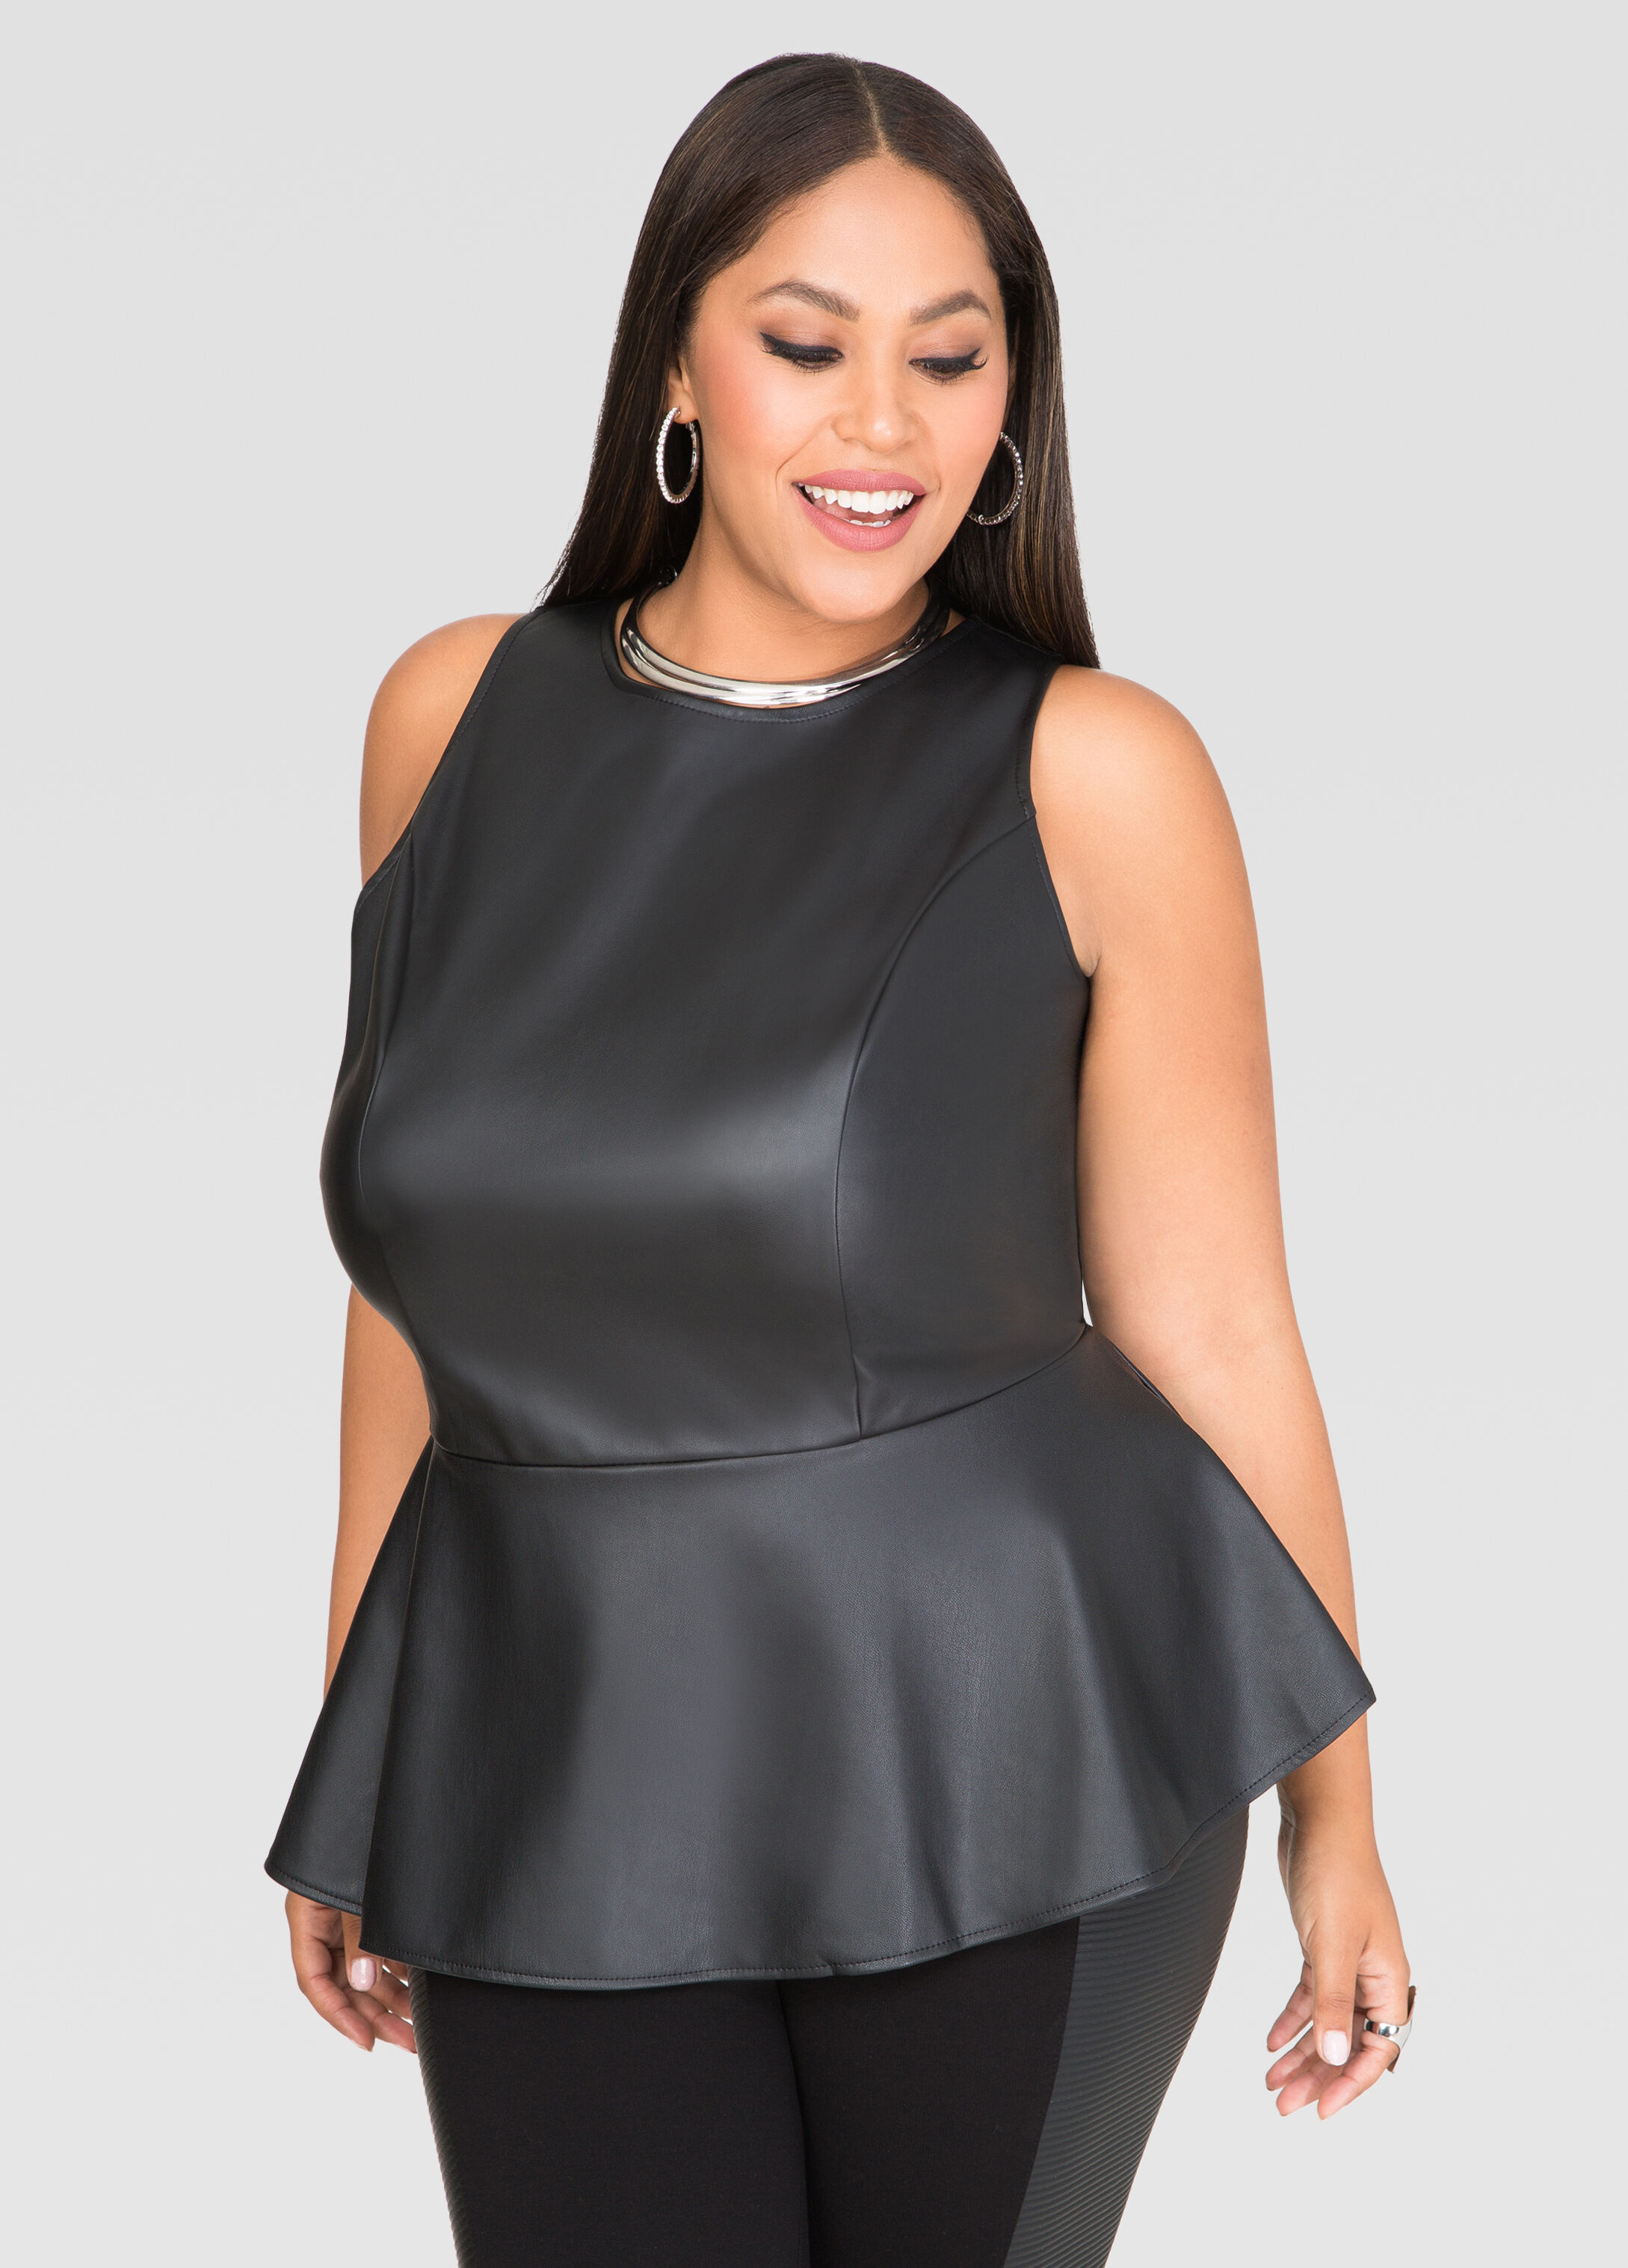 Only $,buy Plus Size Lace Yoke PU Leather Peplum Top at GearBest Store with free shipping. Only $,buy Plus Size Lace Yoke PU Leather Peplum Top at GearBest Store with free shipping. Save BIG with our app! Download our Cool FREE App! Enjoy App-EXCLUSIVE Deals. Ship to Language Support Center.